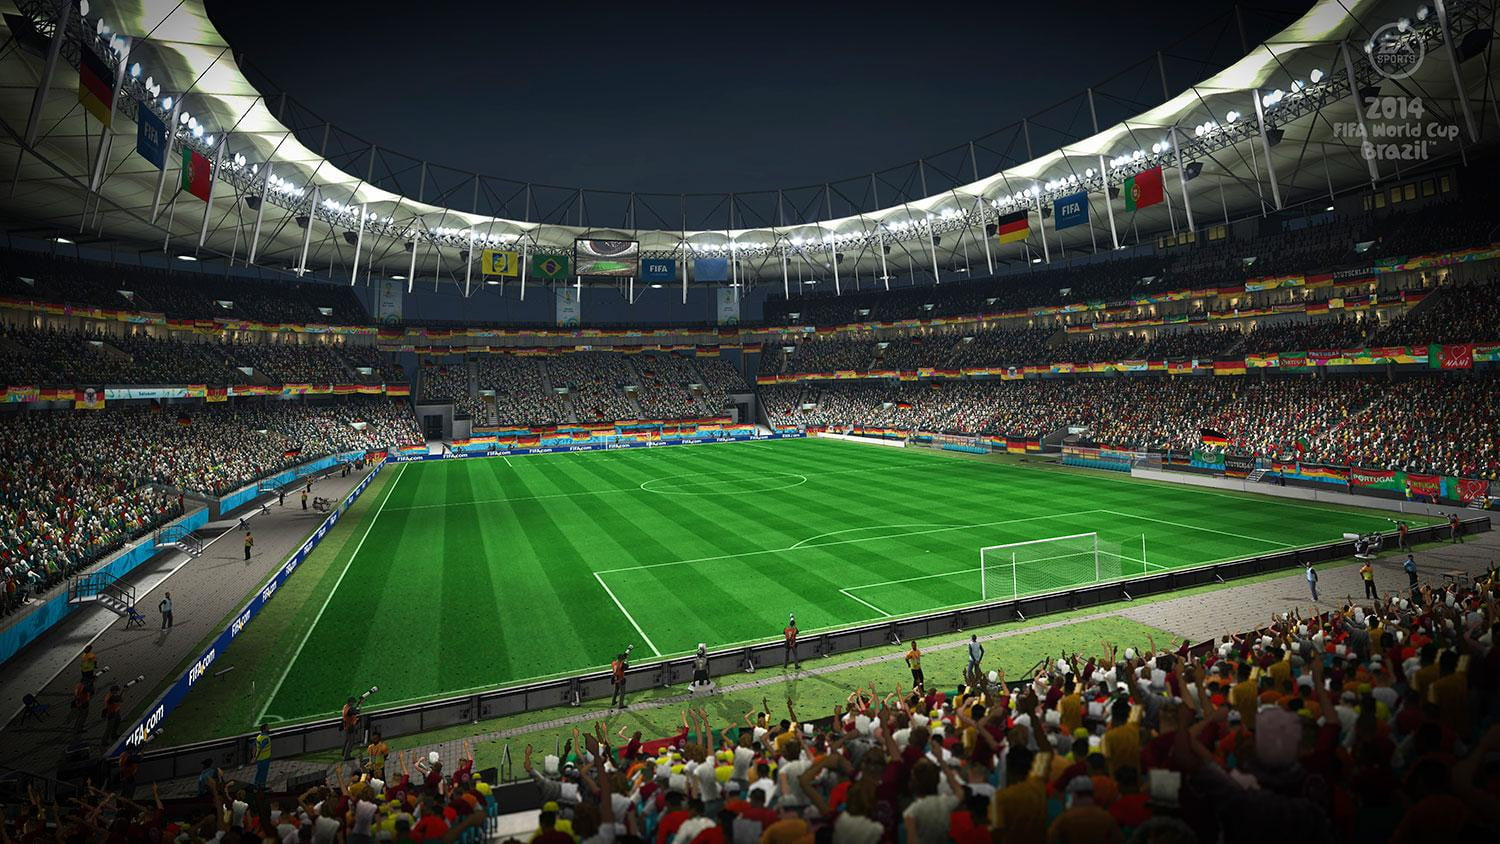 Great Ea Sports World Cup 2018 - 2014-fifa-world-cup-screenshot-6-1500x844  Perfect Image Reference_702815 .jpg?ver\u003d1